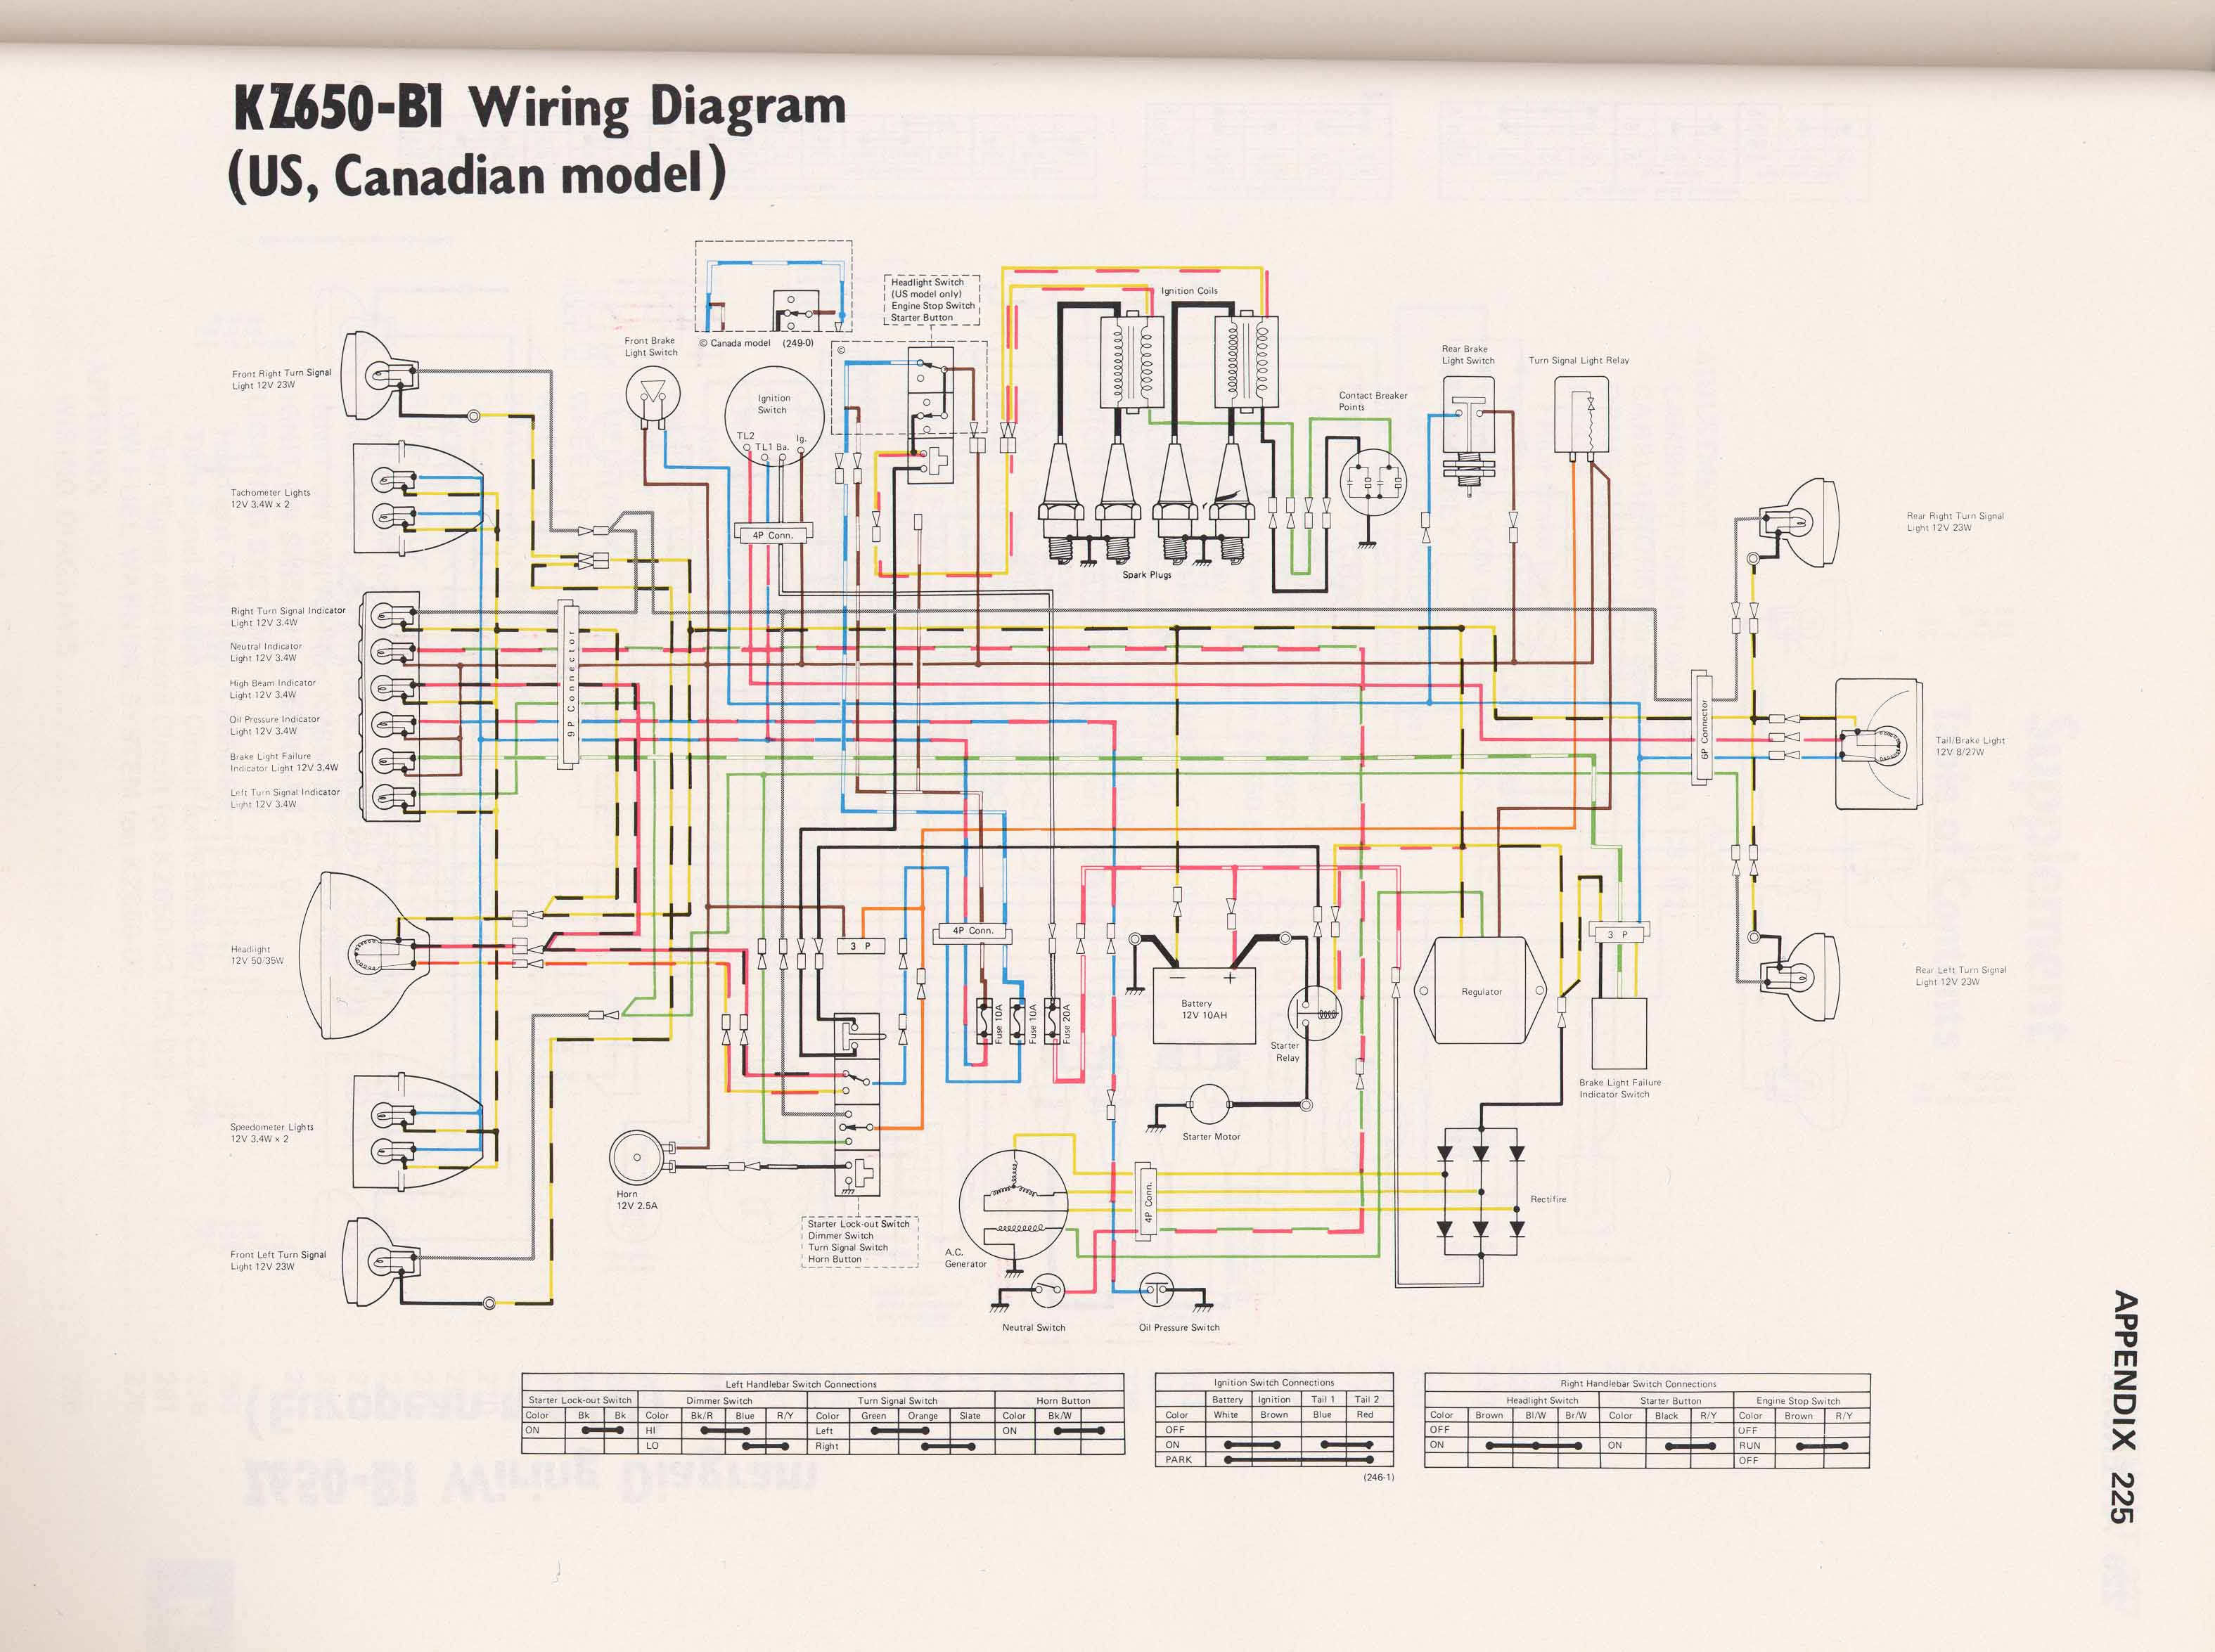 Kawasaki Wiring Diagrams Ask Answer Diagram Klr650 Engine Kz650 Info Rh Bayou